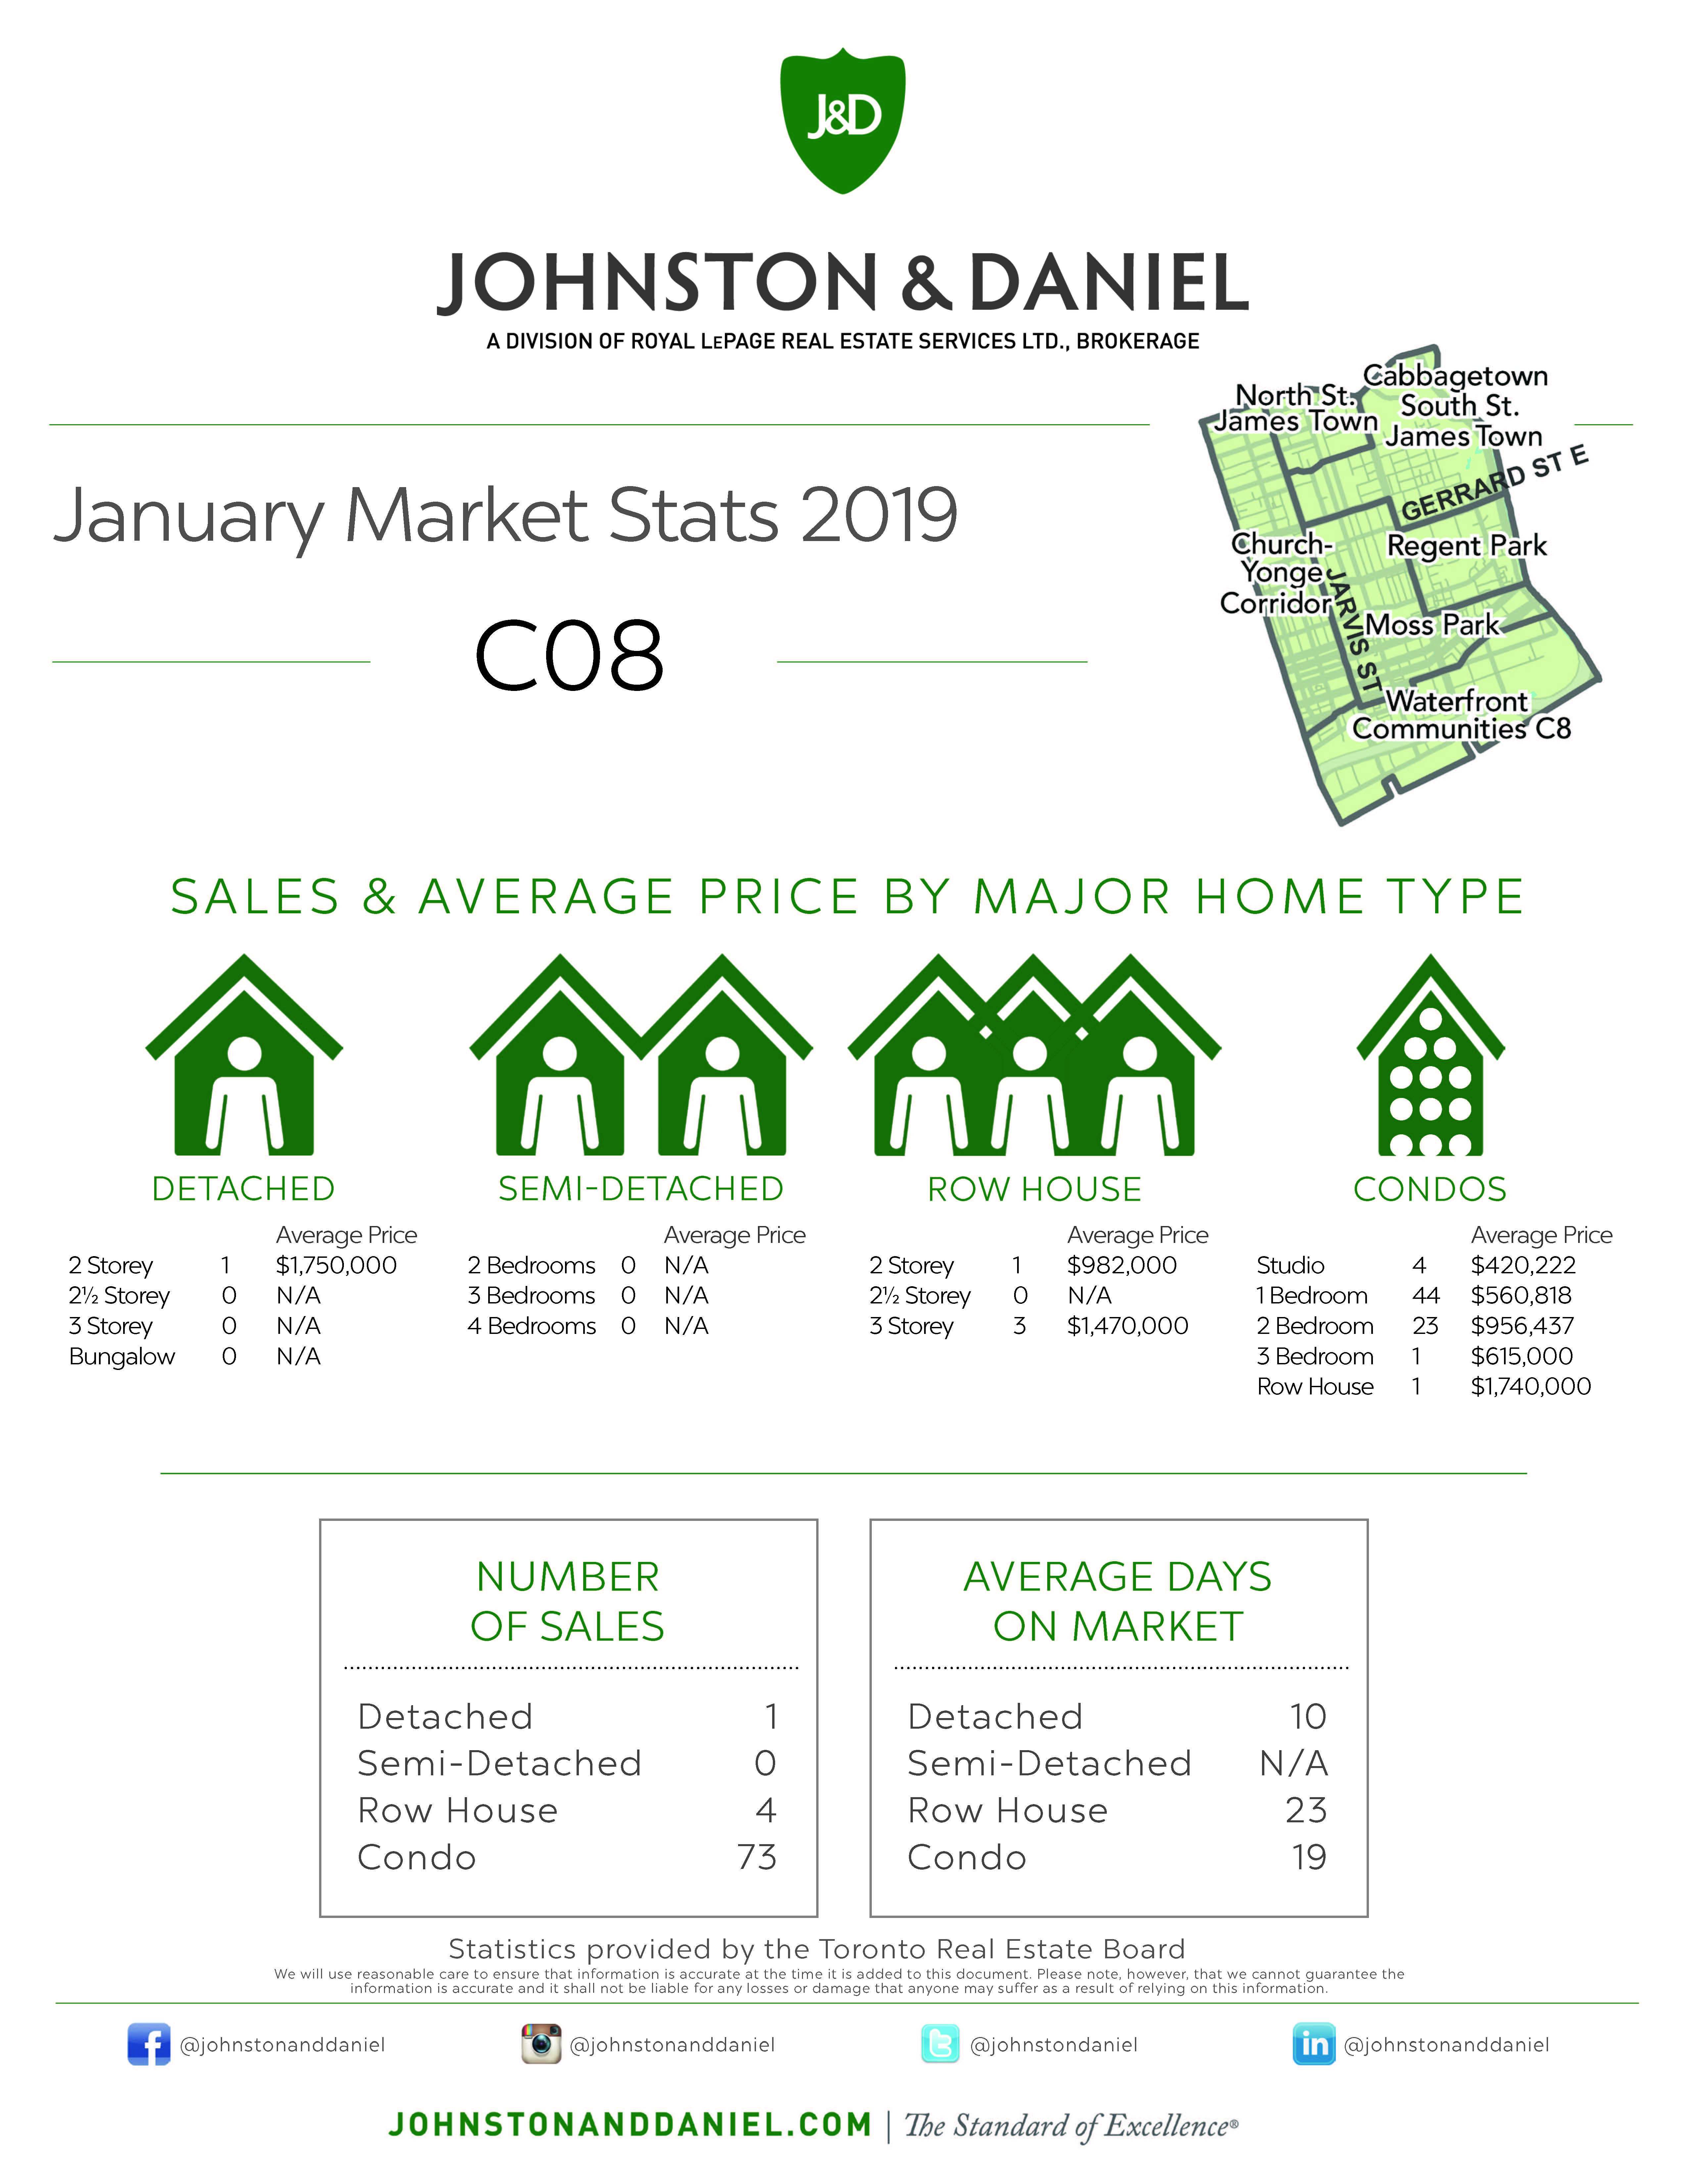 Toronto Real Estate Sales Statistics January 2019 for Area C08